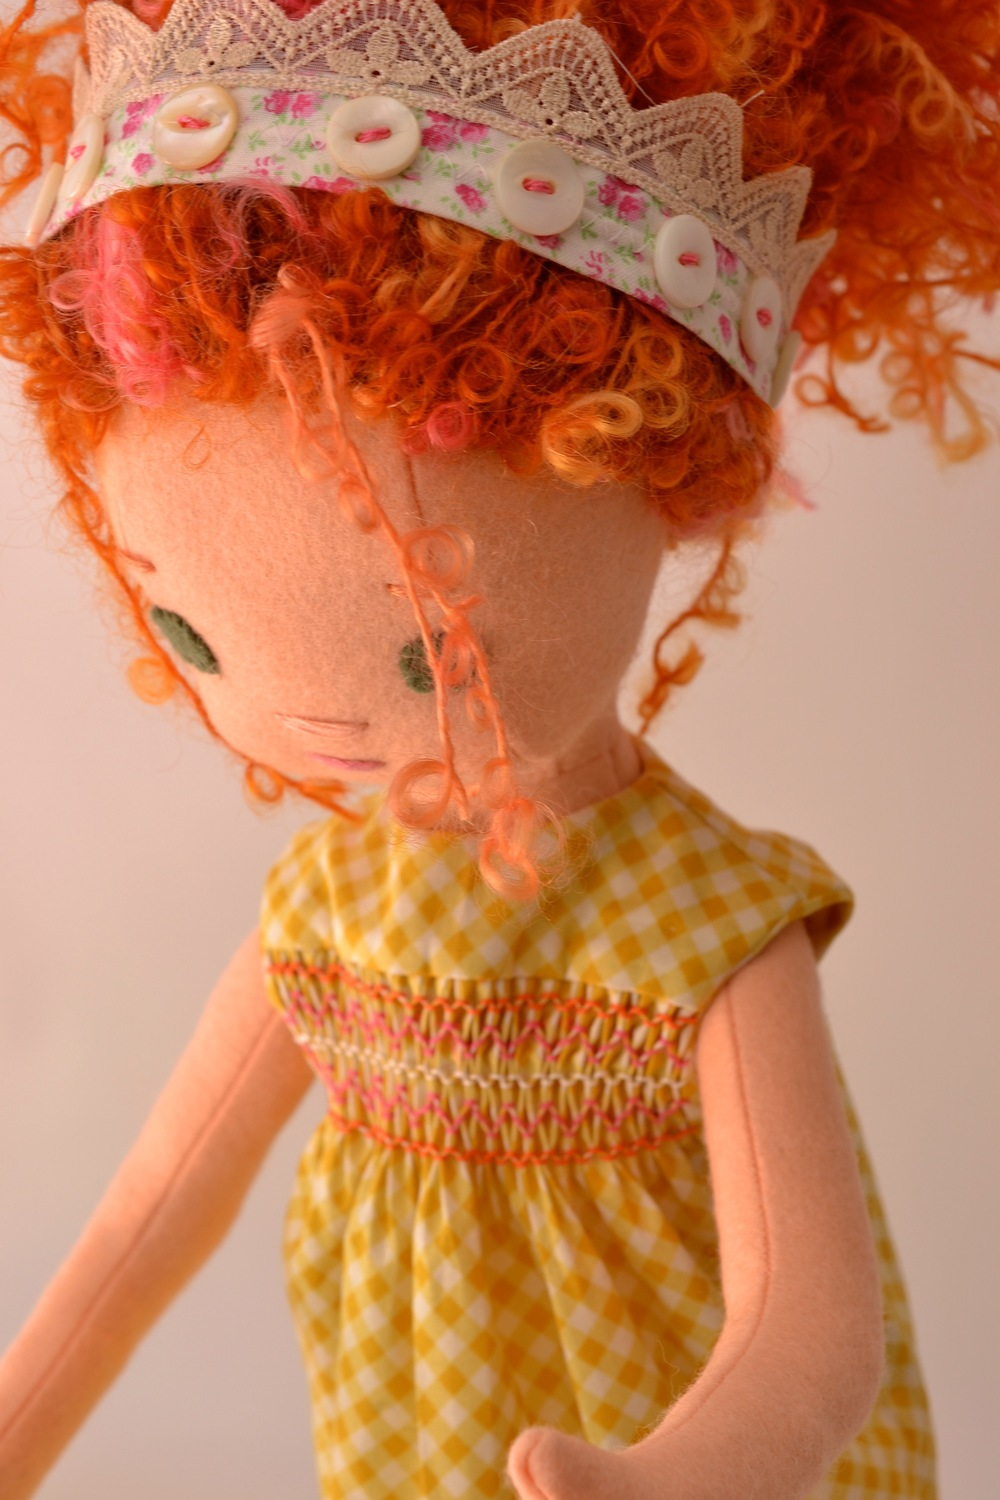 Fancy Nancy is careful to live up to her name and always wears her crown.